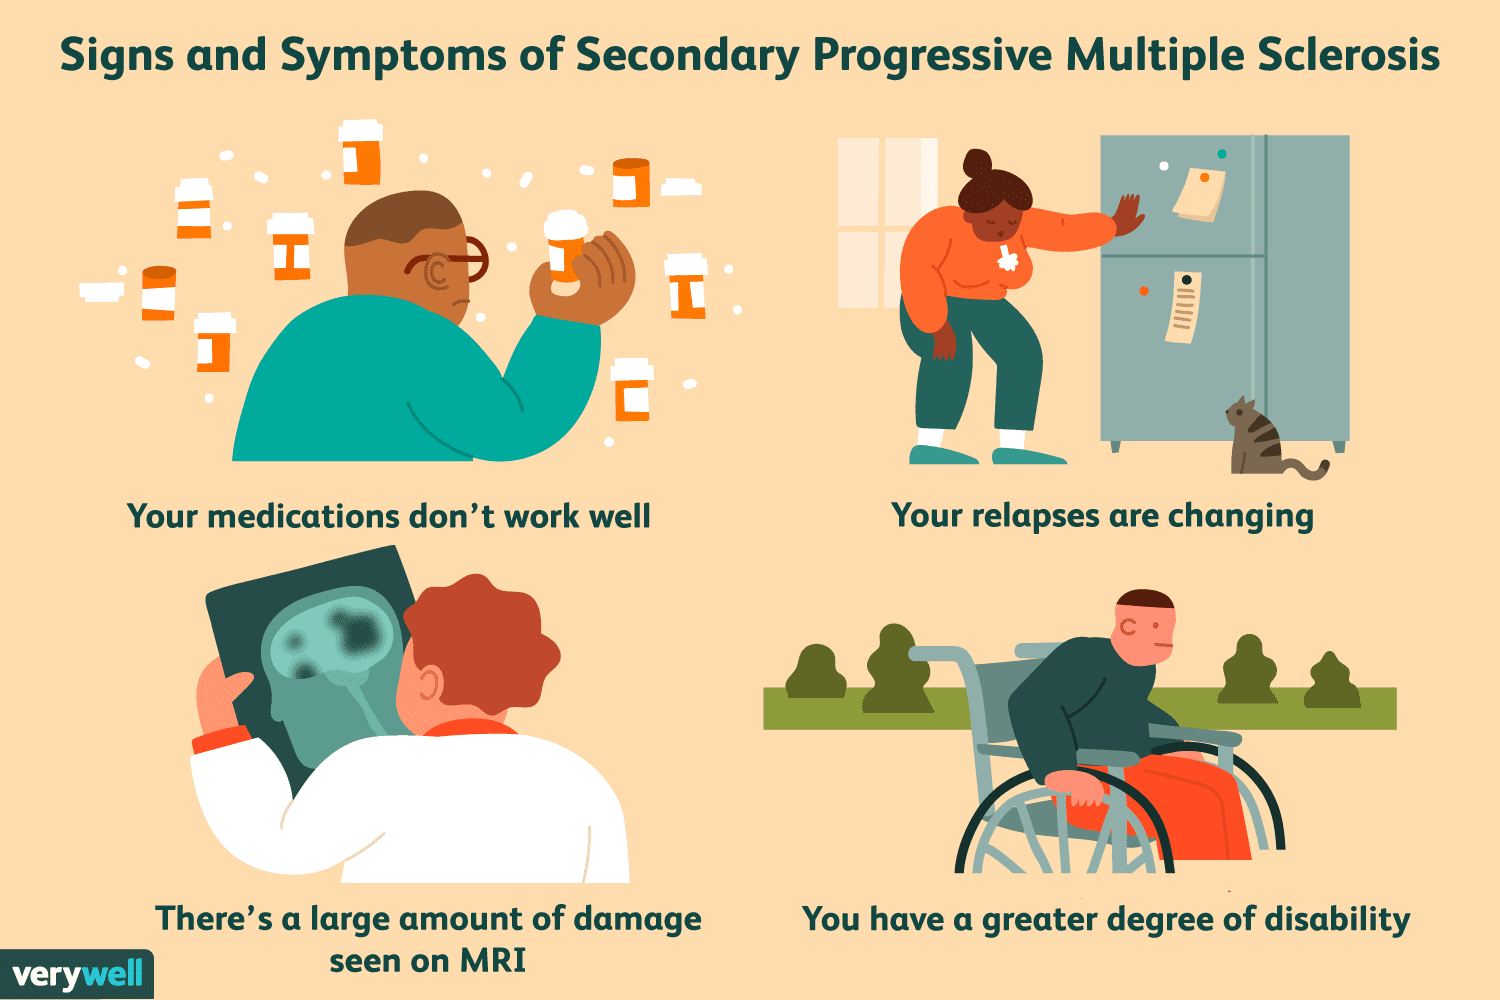 Signs and Symptoms of Secondary Progressive Multiple Sclerosis